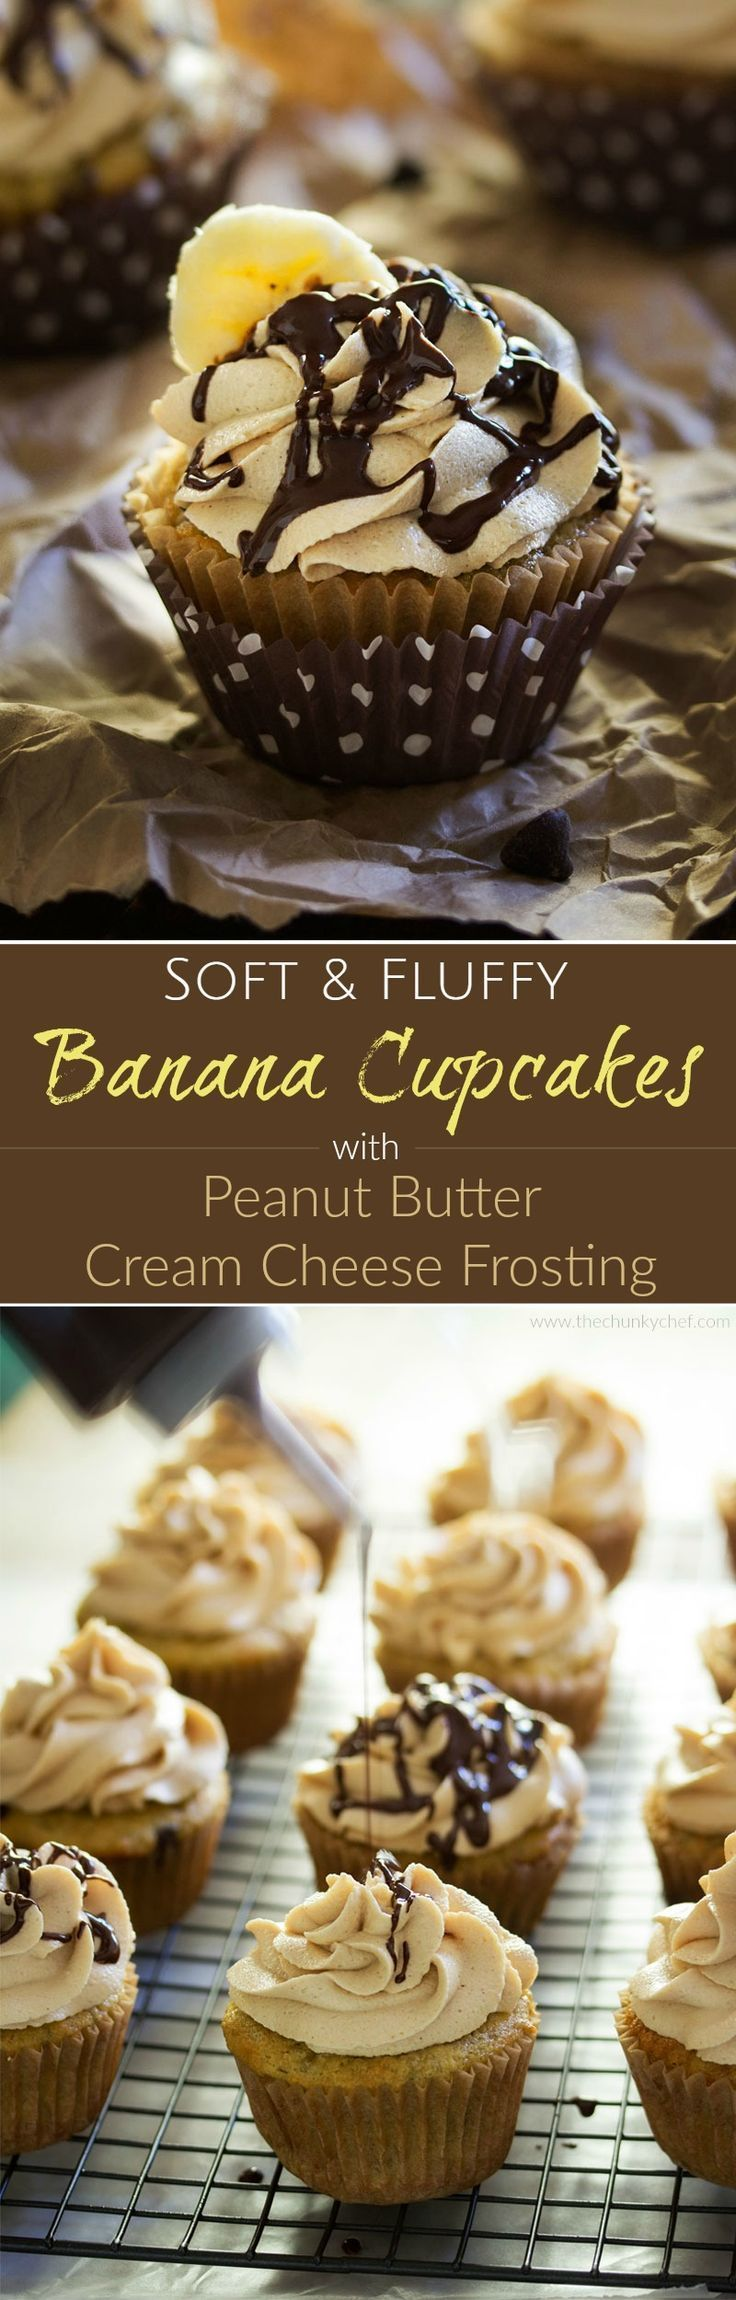 Banana Cupcakes   Unbelievably soft banana cupcakes are frosted with a creamy peanut butter cream cheese frosting that's kissed with honey, and drizzled with chocolate!